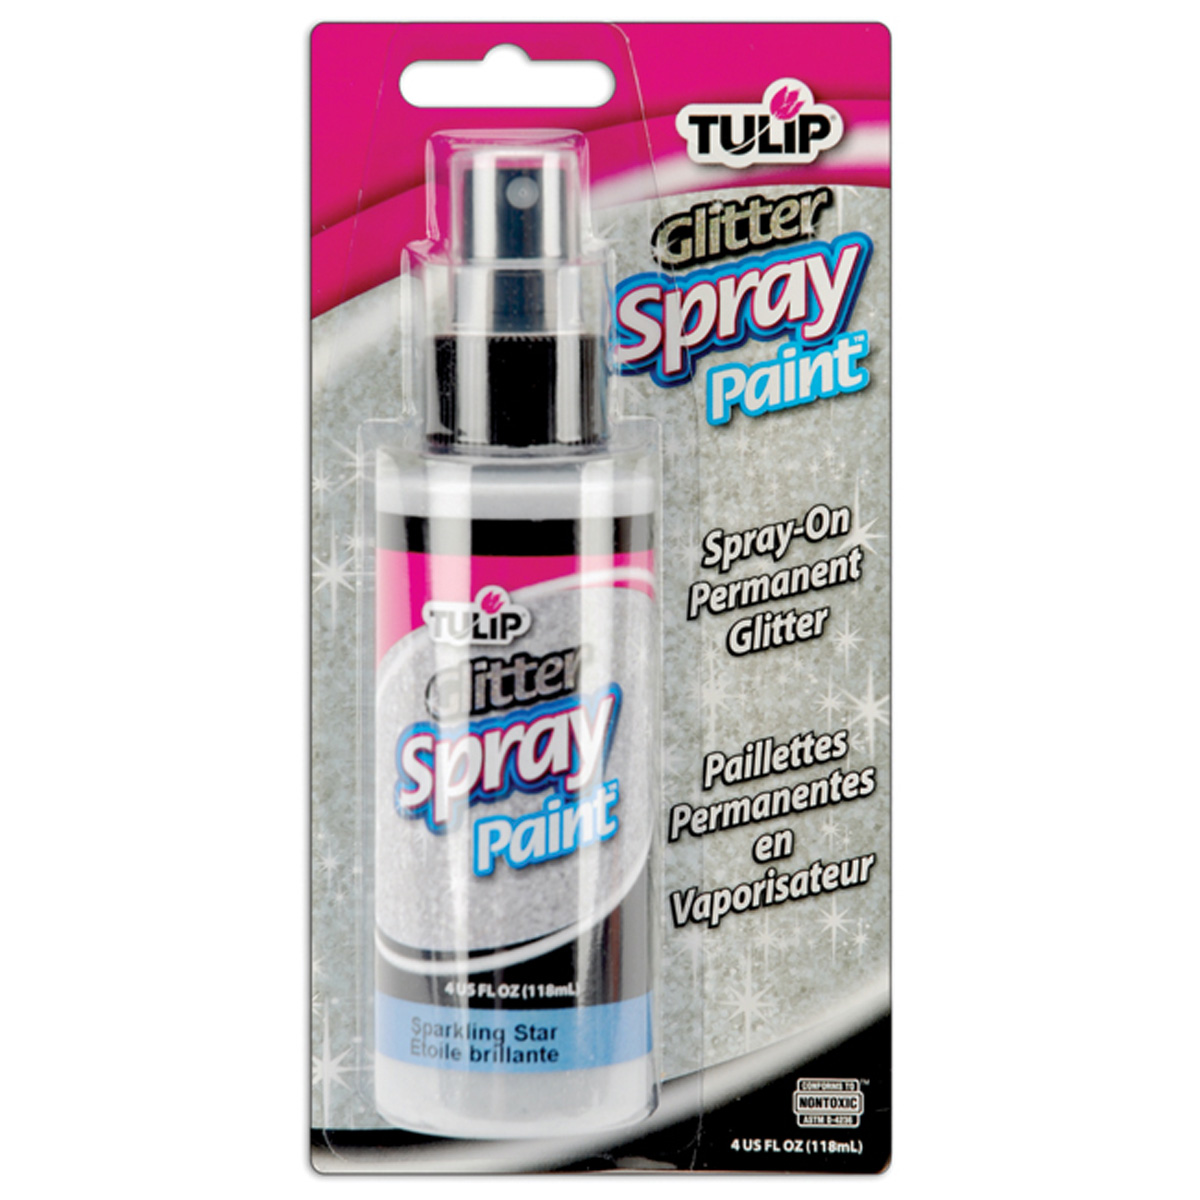 Tulip Fabric Spray Paint 4oz Sparkling Star White Glitter